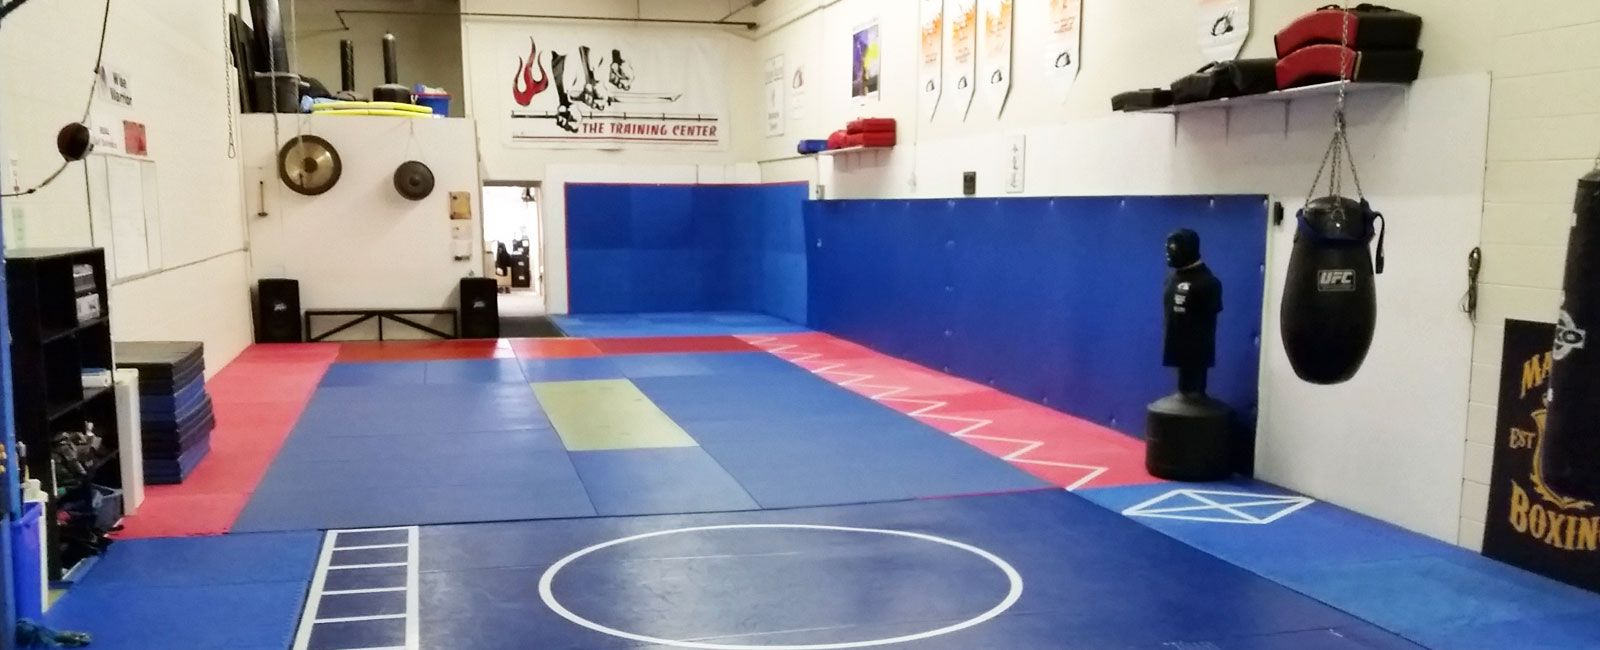 Mixed Martial Arts Schools St Louis Mo With Images Stl Martial Arts School St Louis News